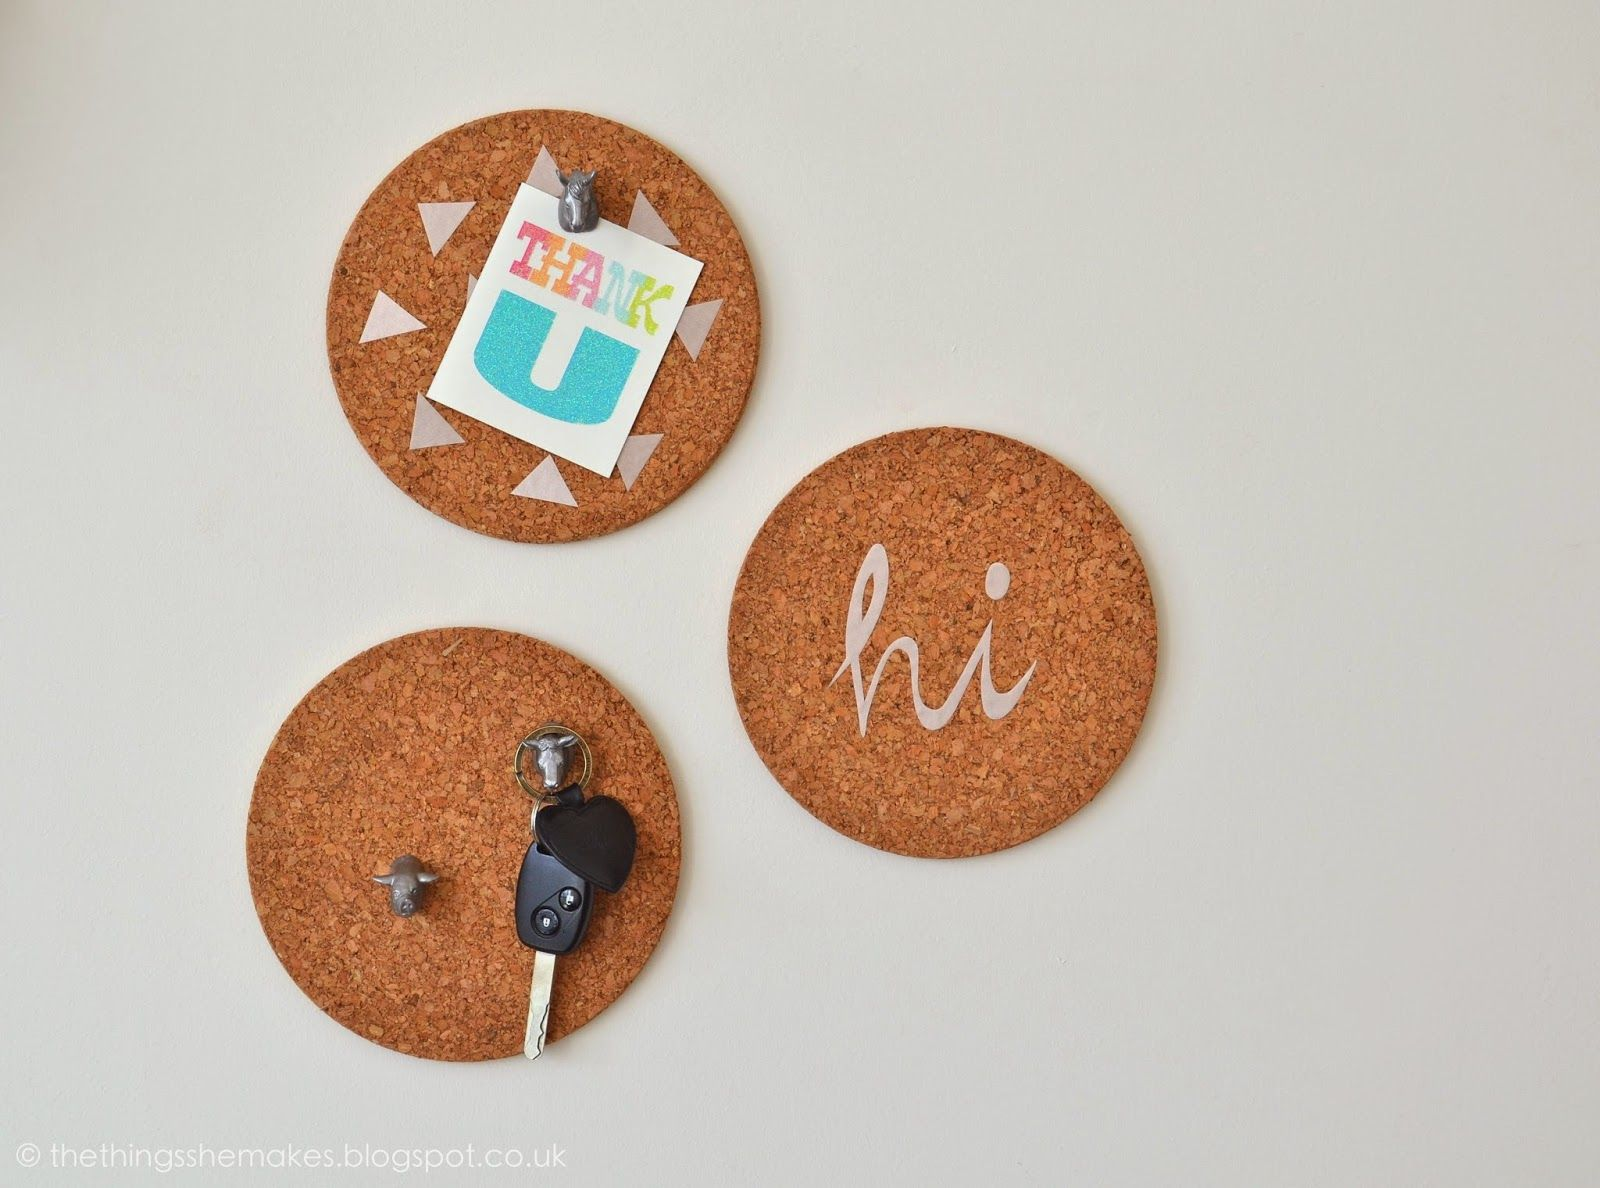 How to Make Mini Pinboards - for keys etc. by the back door?